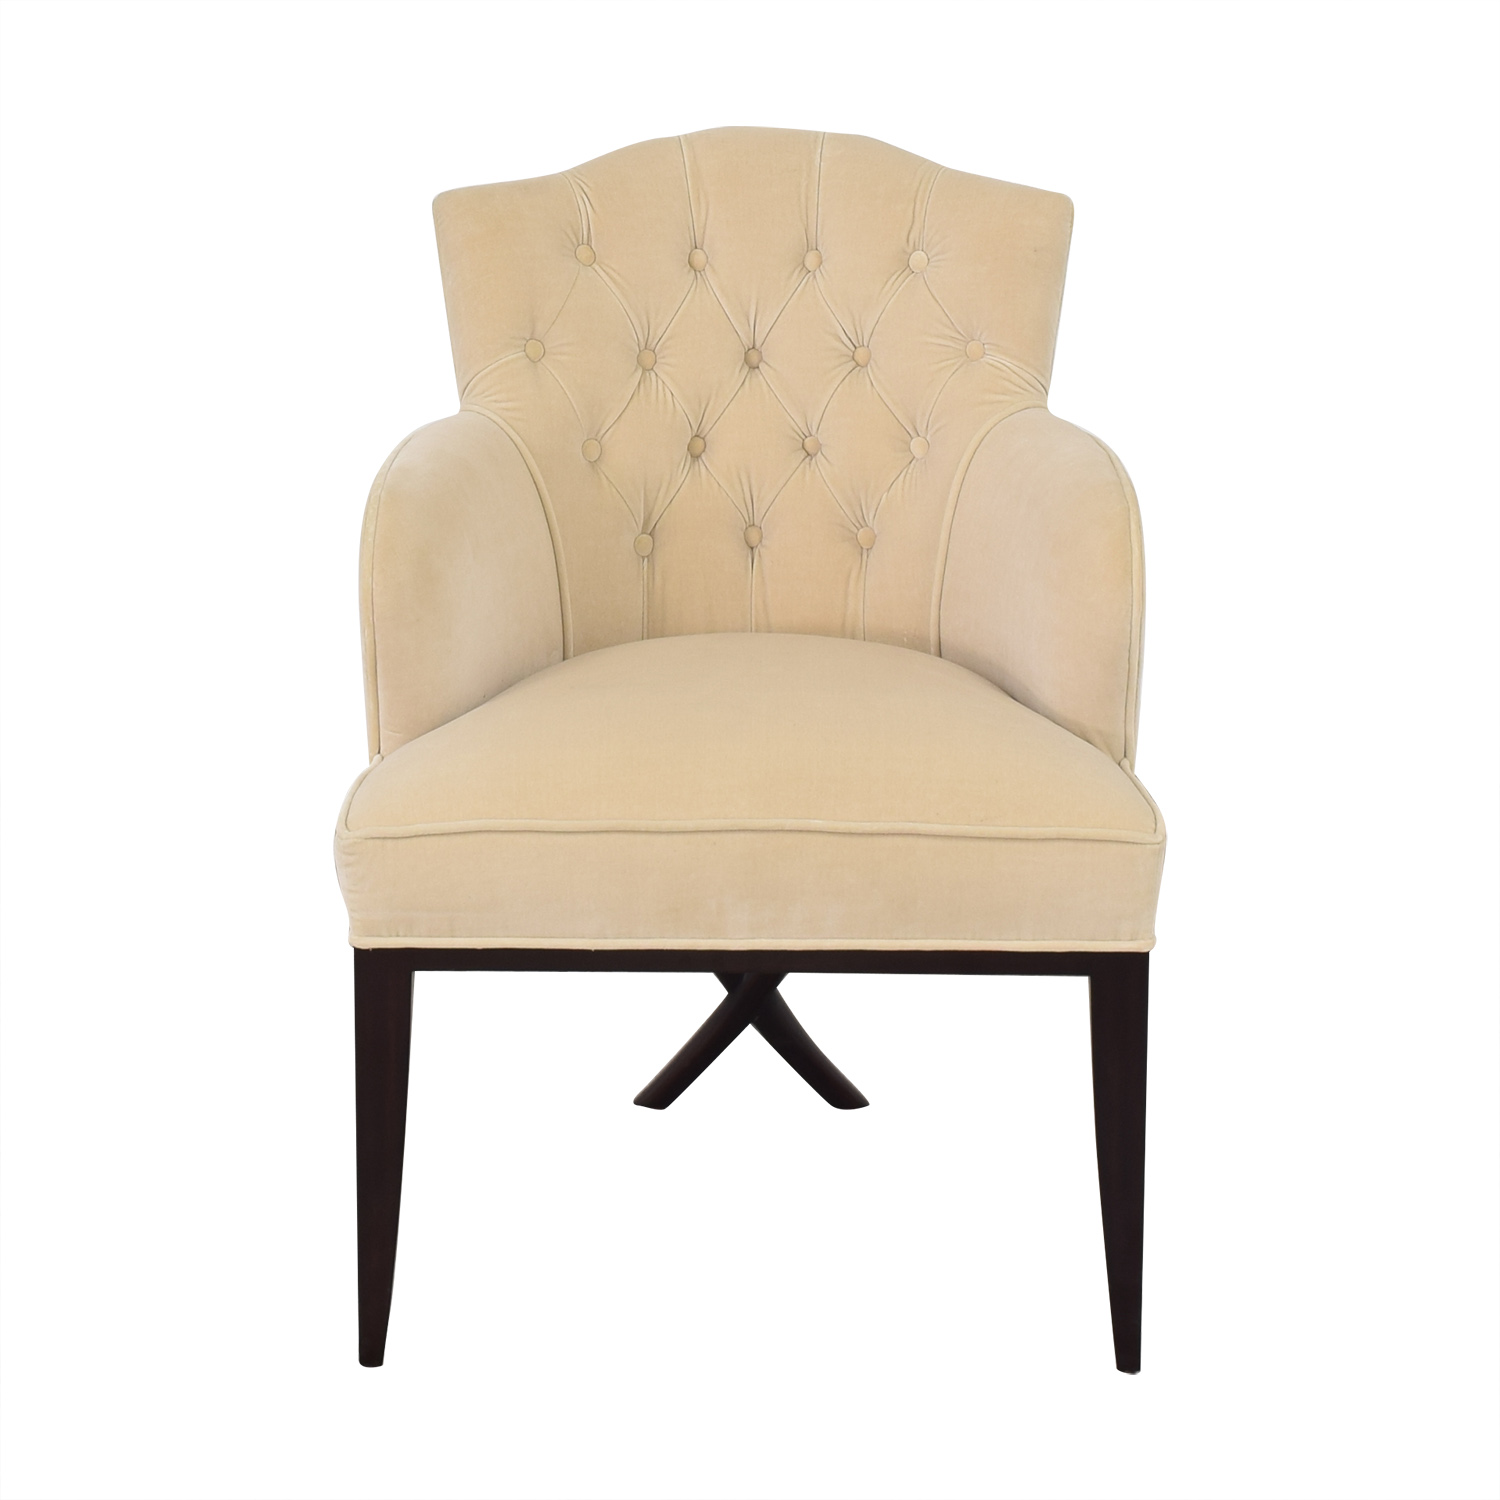 Christopher Guy Christopher Guy Monaco Chair beige